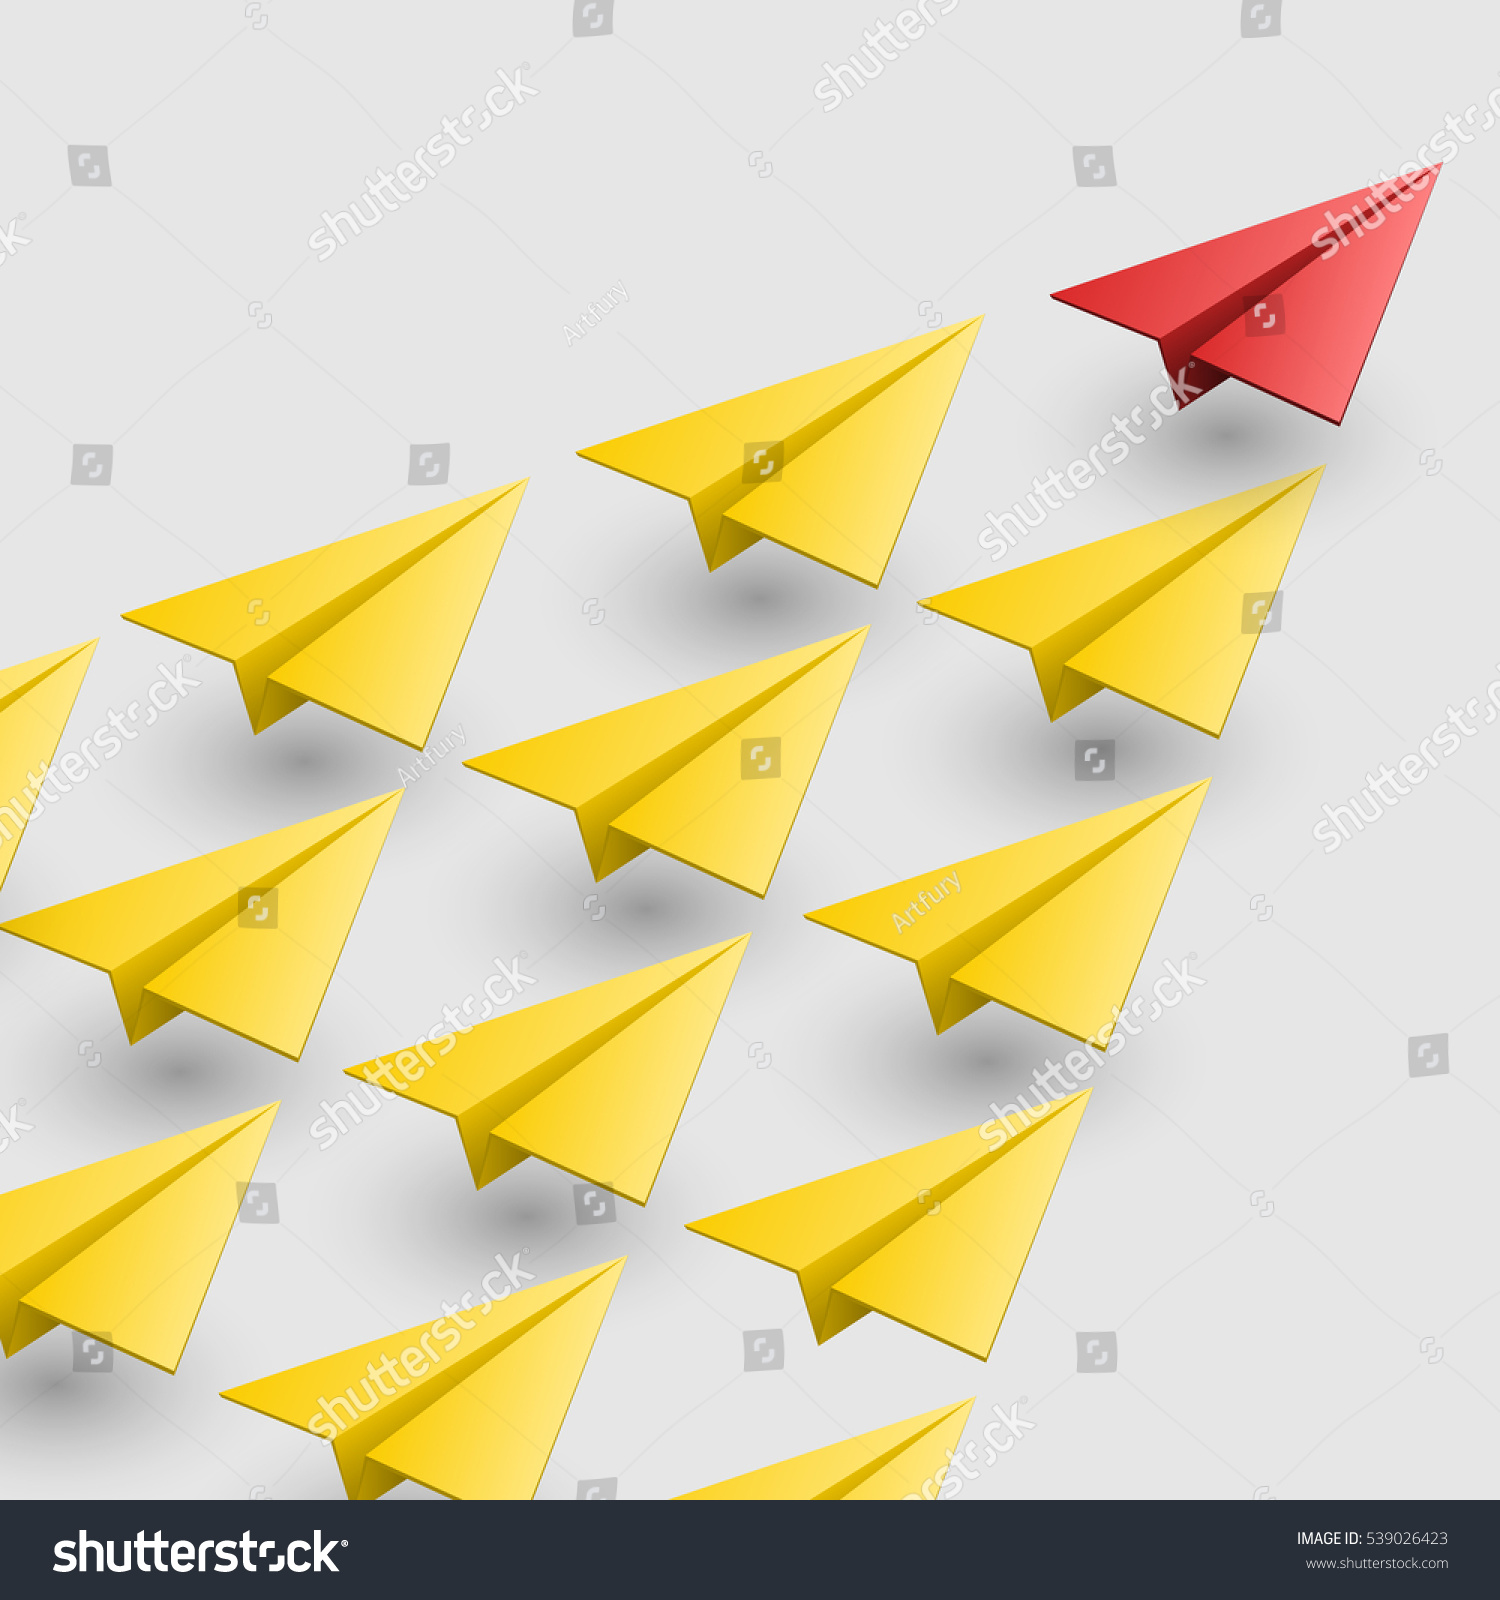 Leader of aircraft guidance Vector illustration